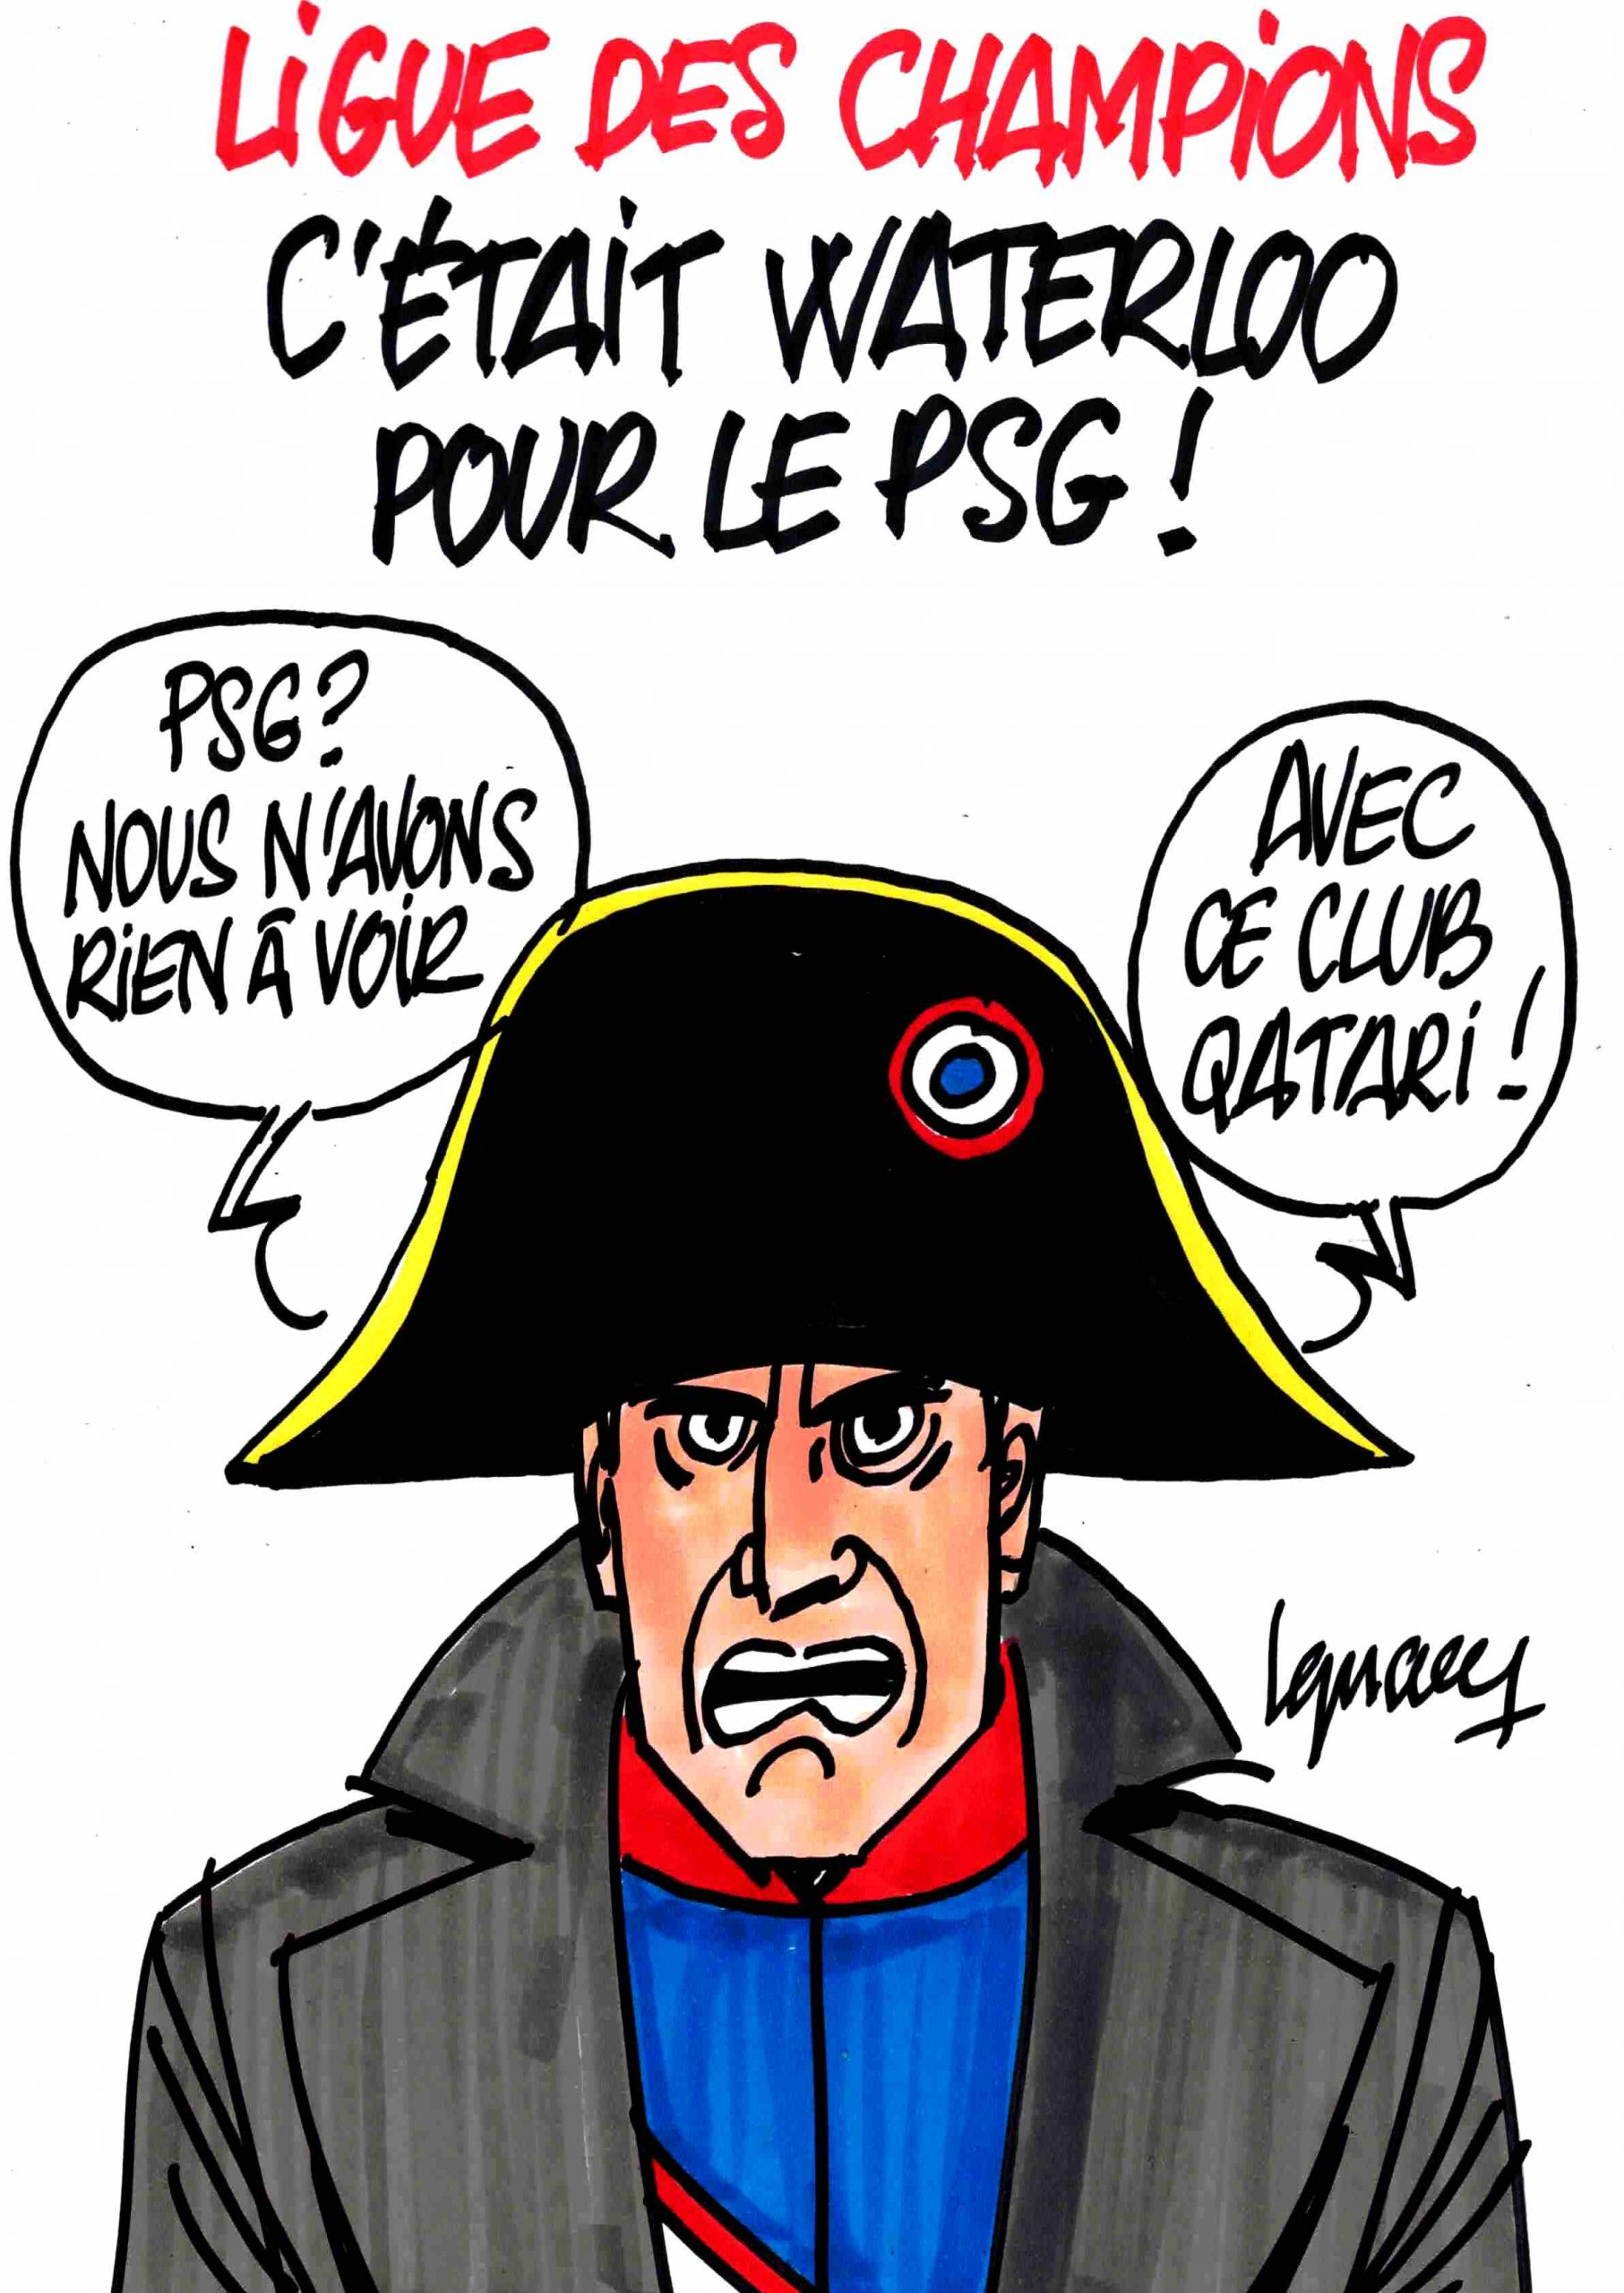 Ignace - Waterloo pour le PSG !